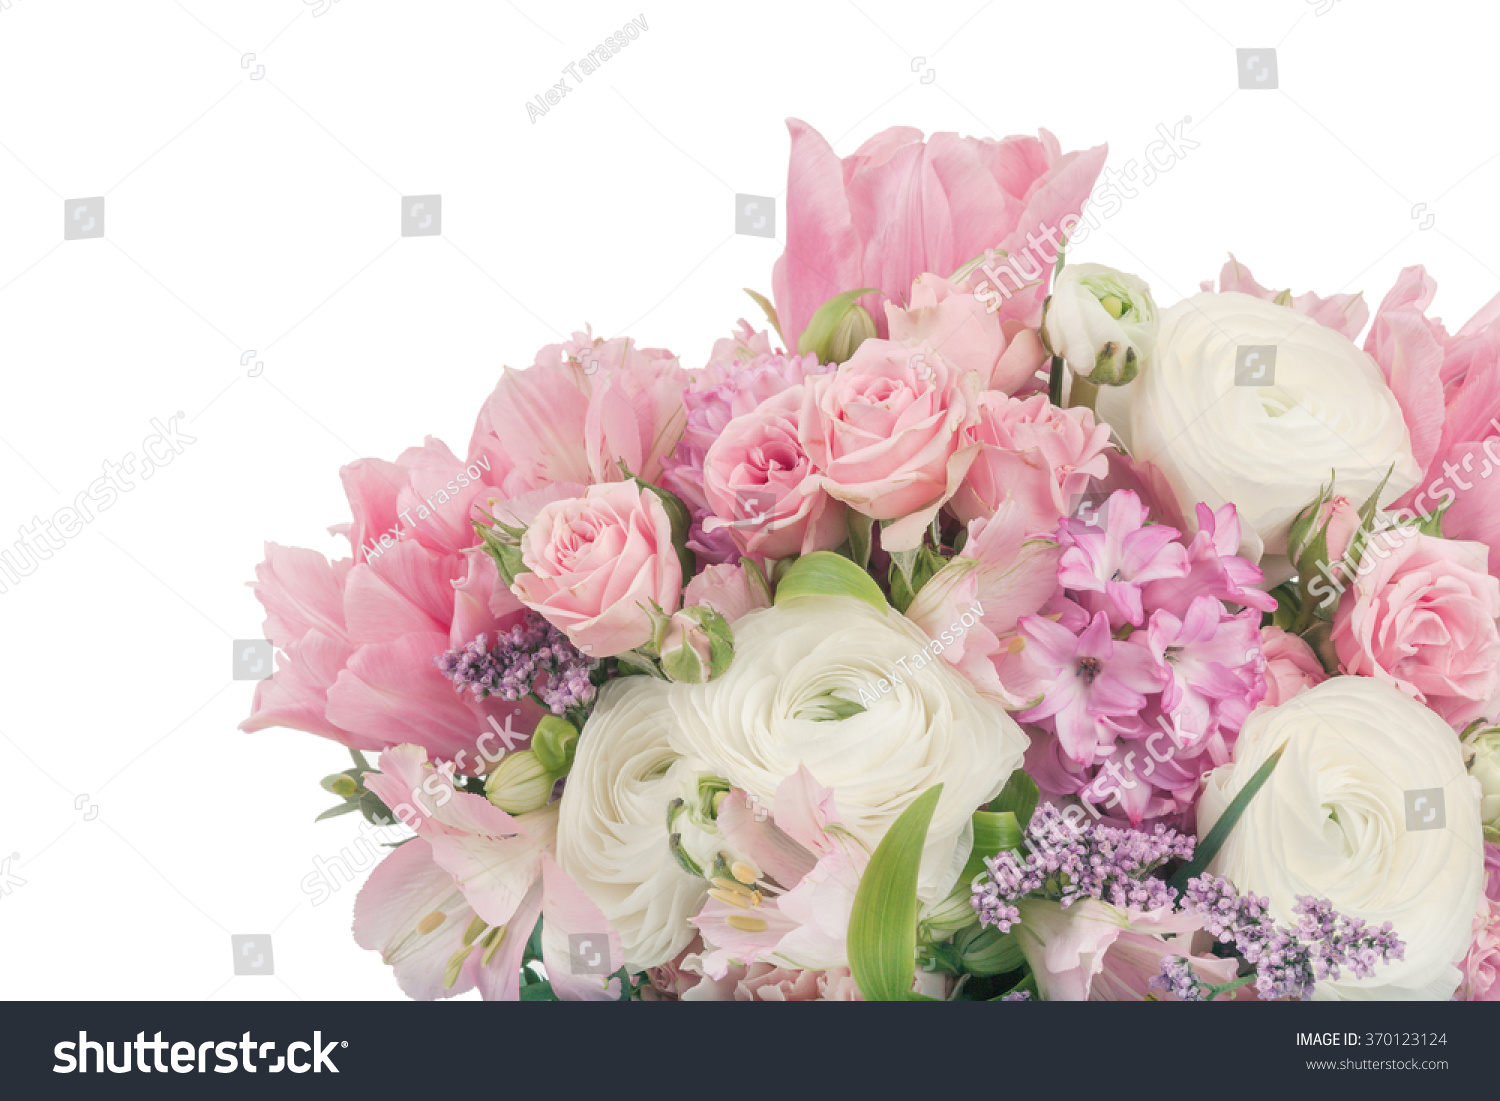 Amazing flower bouquet arrangement pastel colors stock photo edit amazing flower bouquet arrangement in pastel colors isolated on white izmirmasajfo